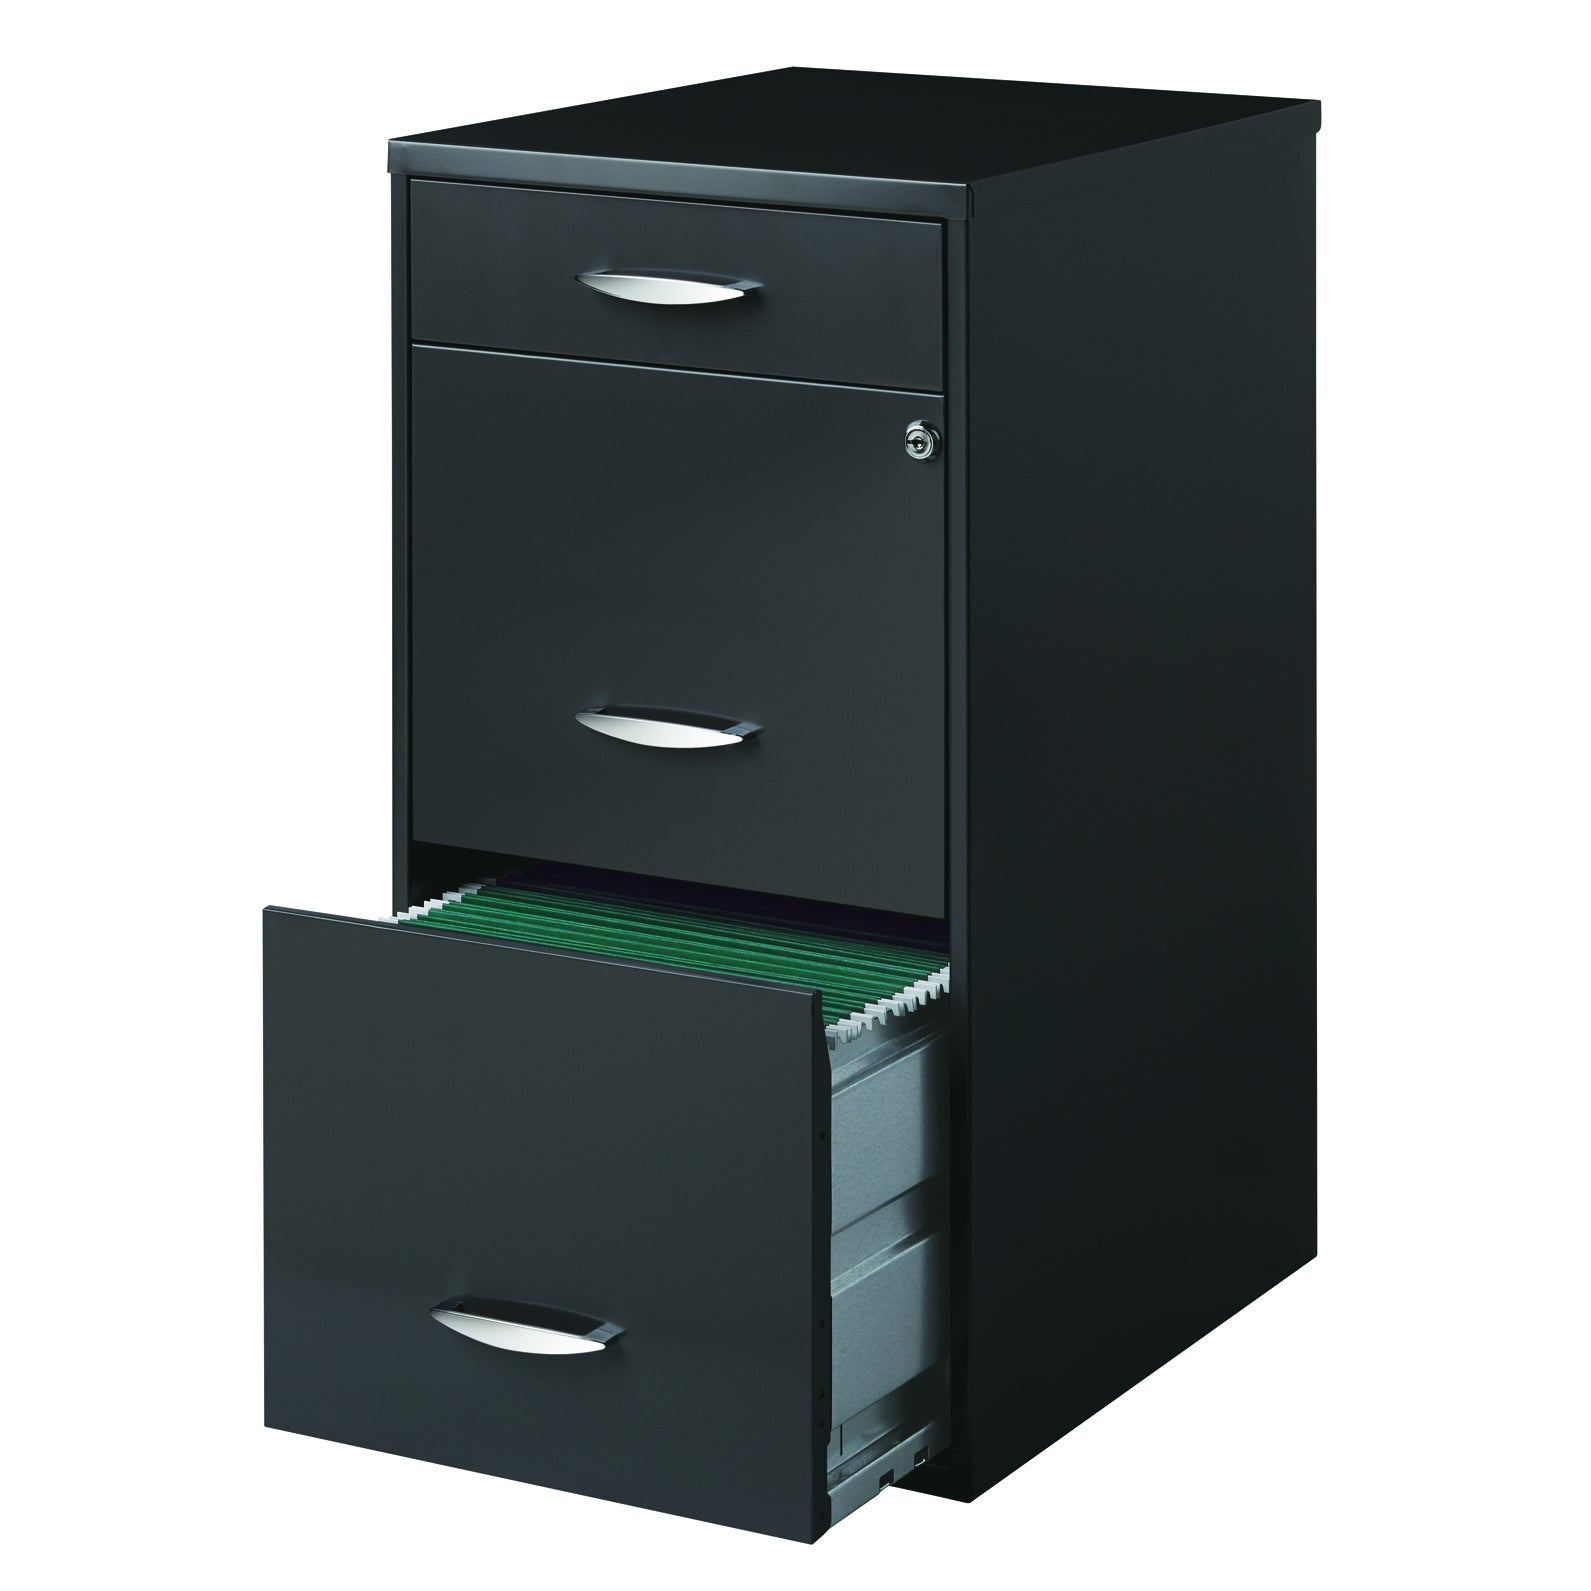 buy filing cabinets file storage online at overstock com our rh overstock com wooden filing cabinets for home office wood filing cabinets for home office